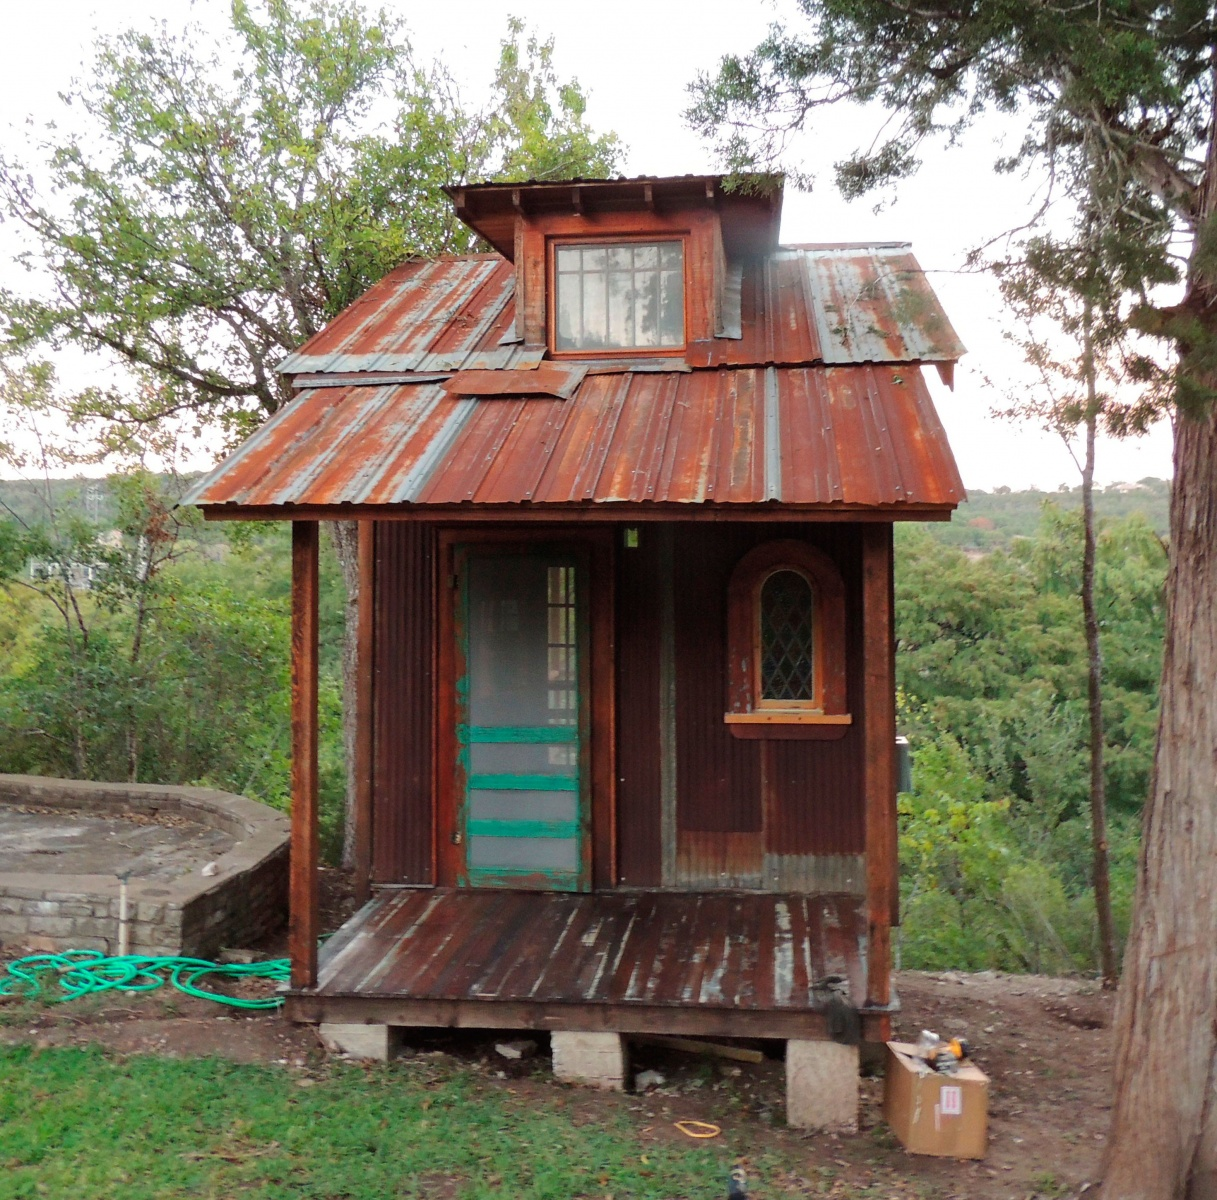 Tiny texas houses 39 recent work the shelter blog for Small new build homes